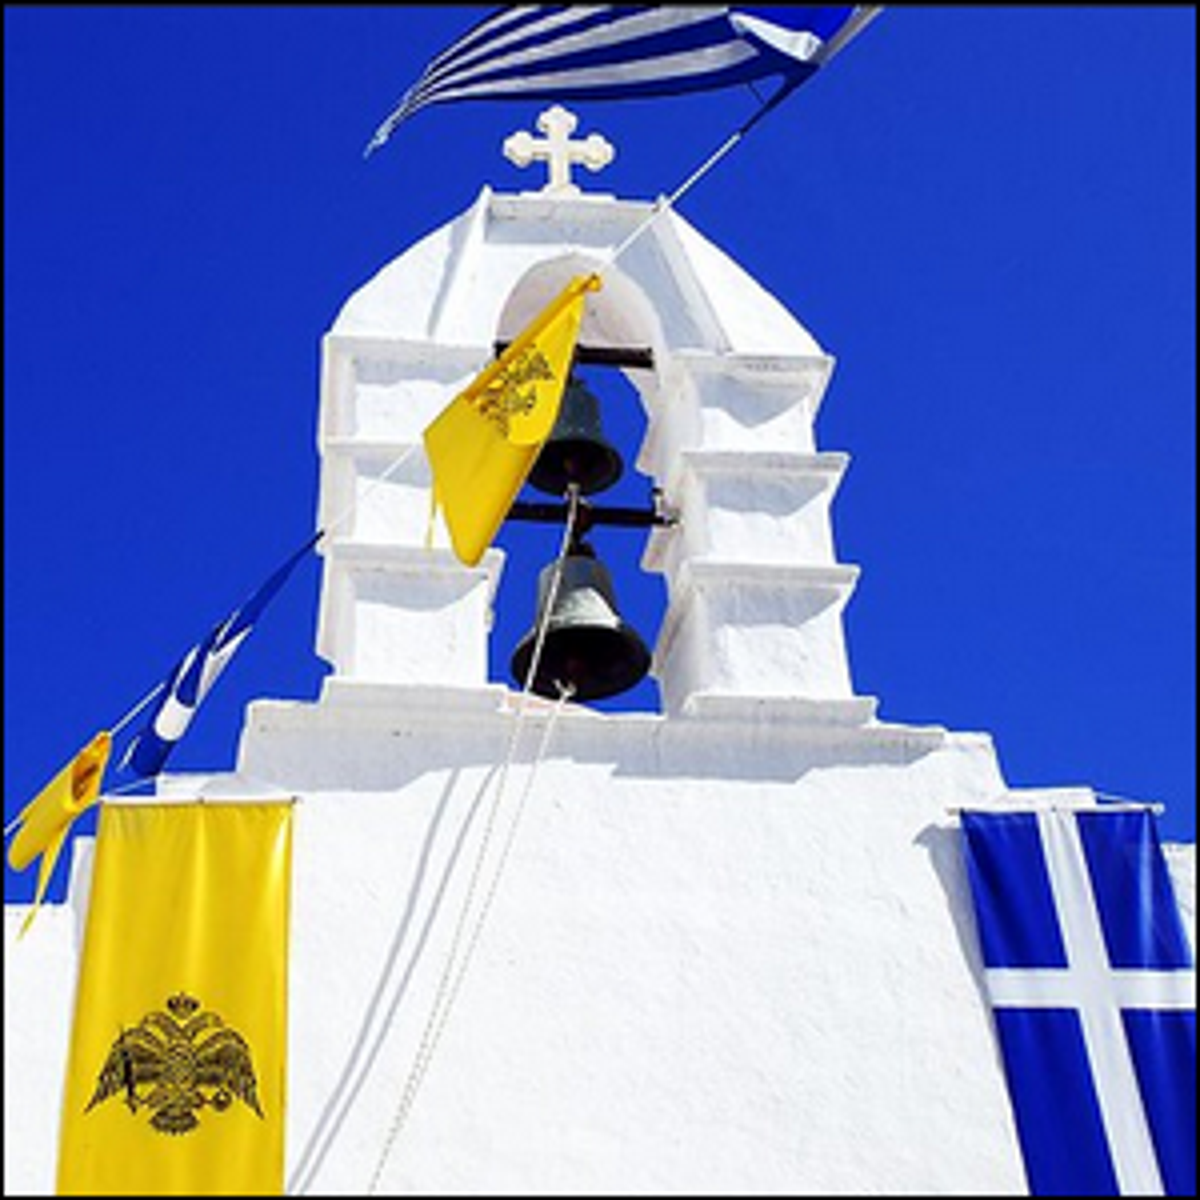 A beautiful white building with a Greek flag flying from the top.